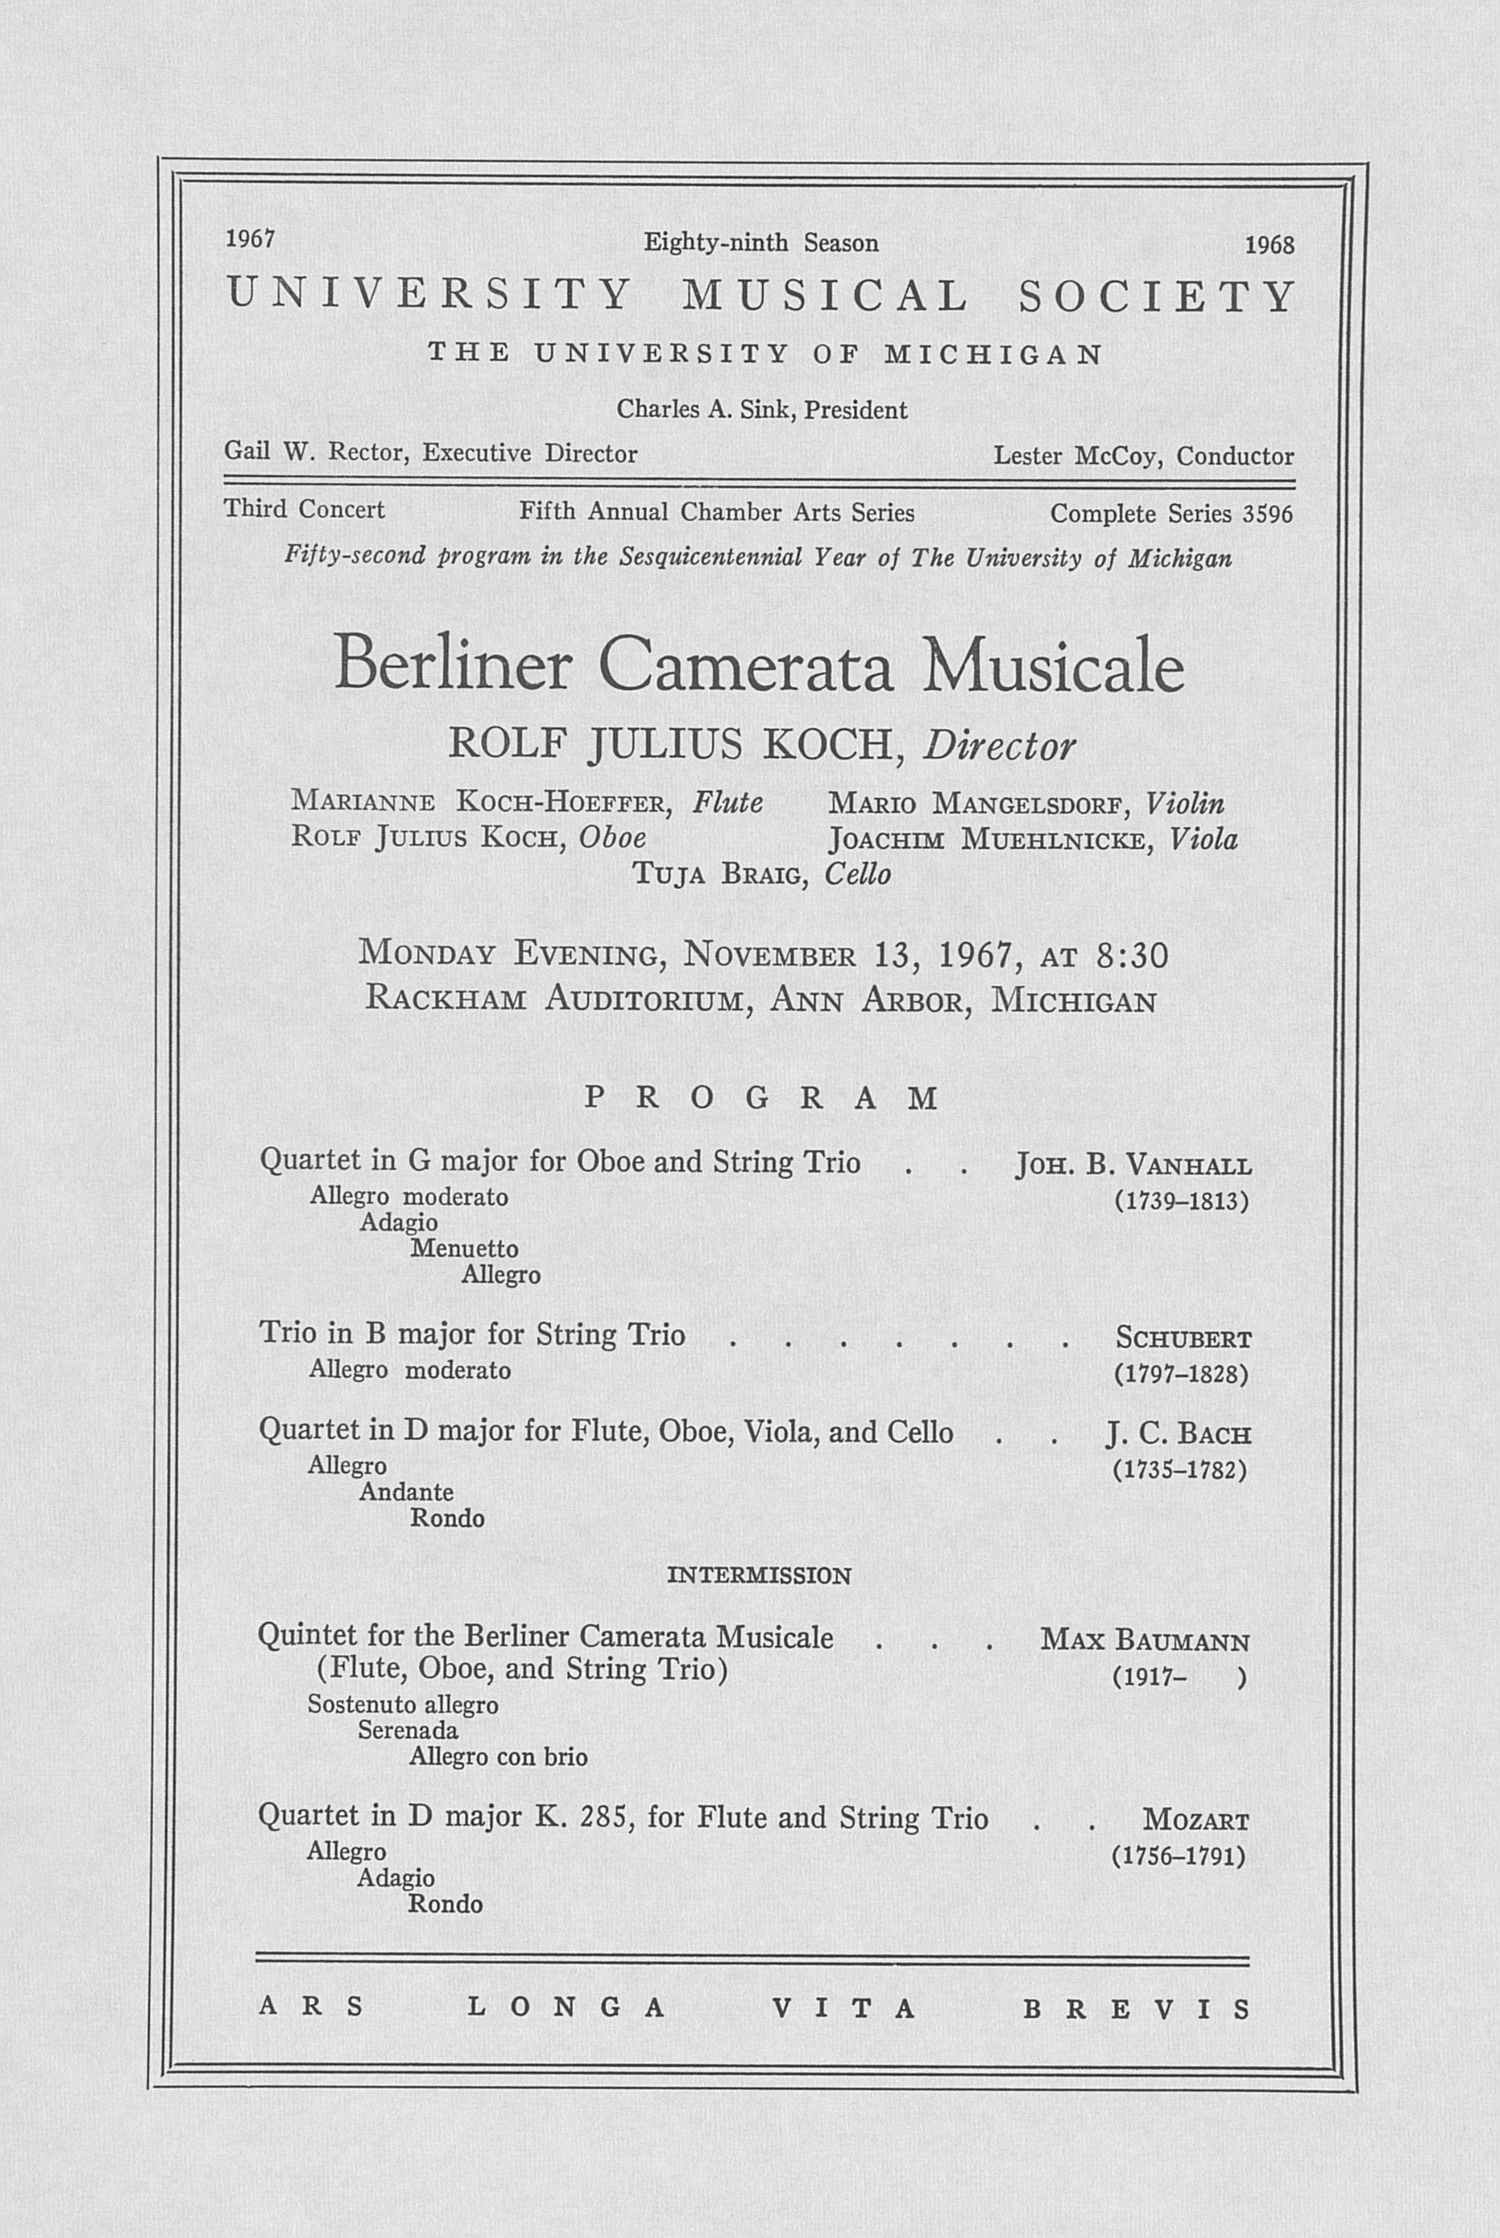 UMS Concert Program, November 13, 1967: Berliner Camerata Musicale -- Rolf Julius Koch image